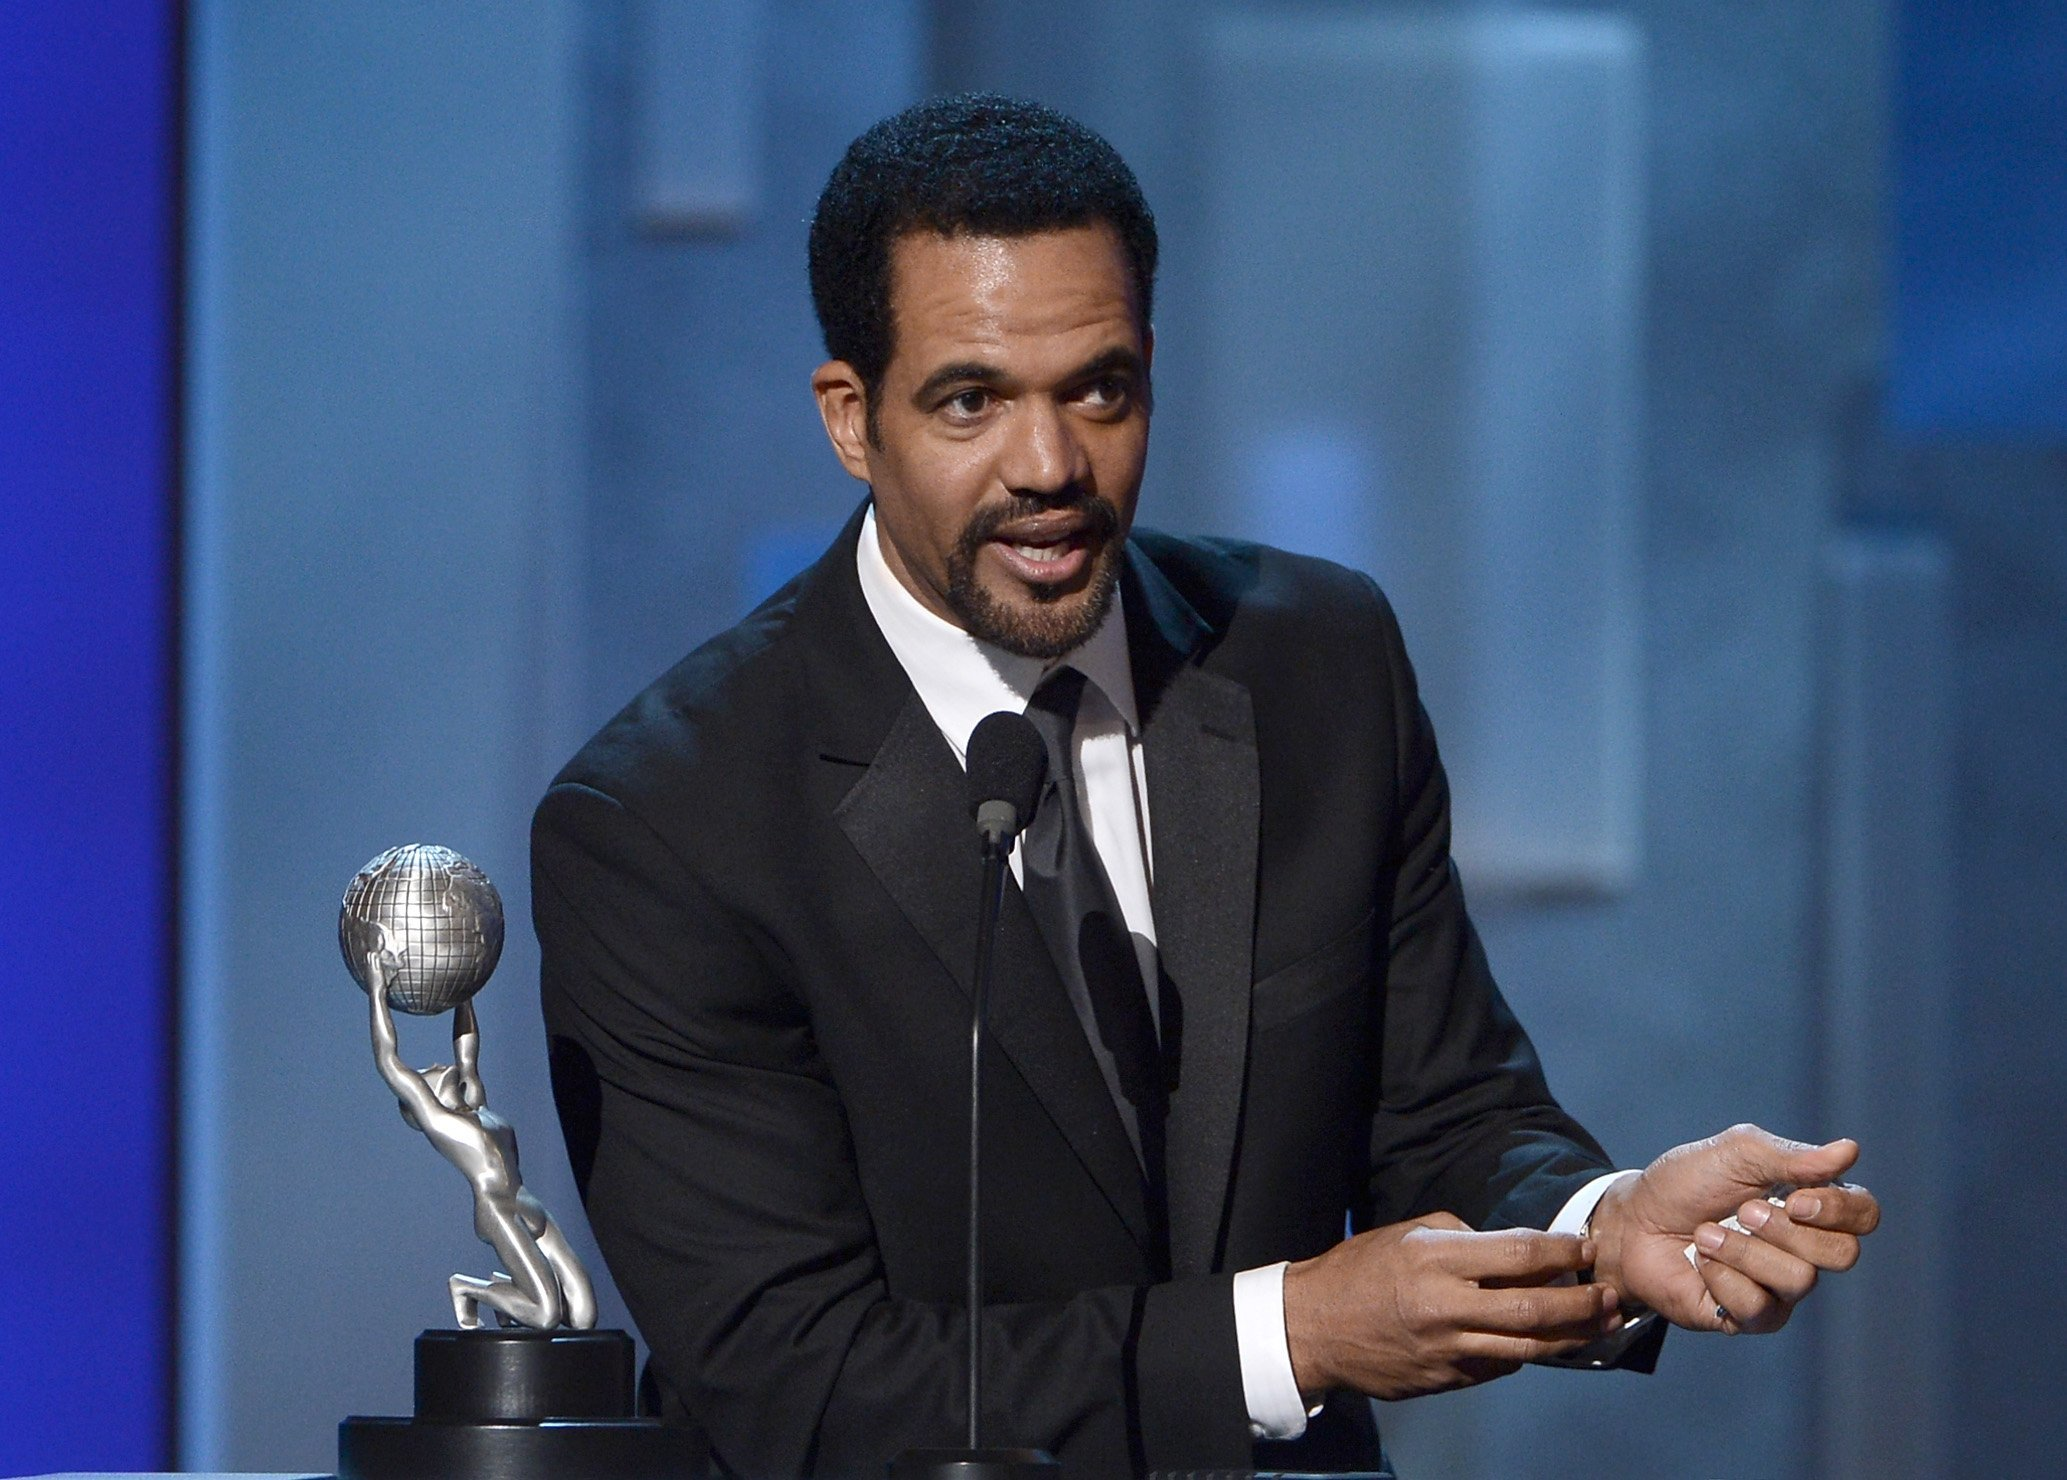 Kristoff St. John at the 44th NAACP Image Awards | Photo: Getty Images